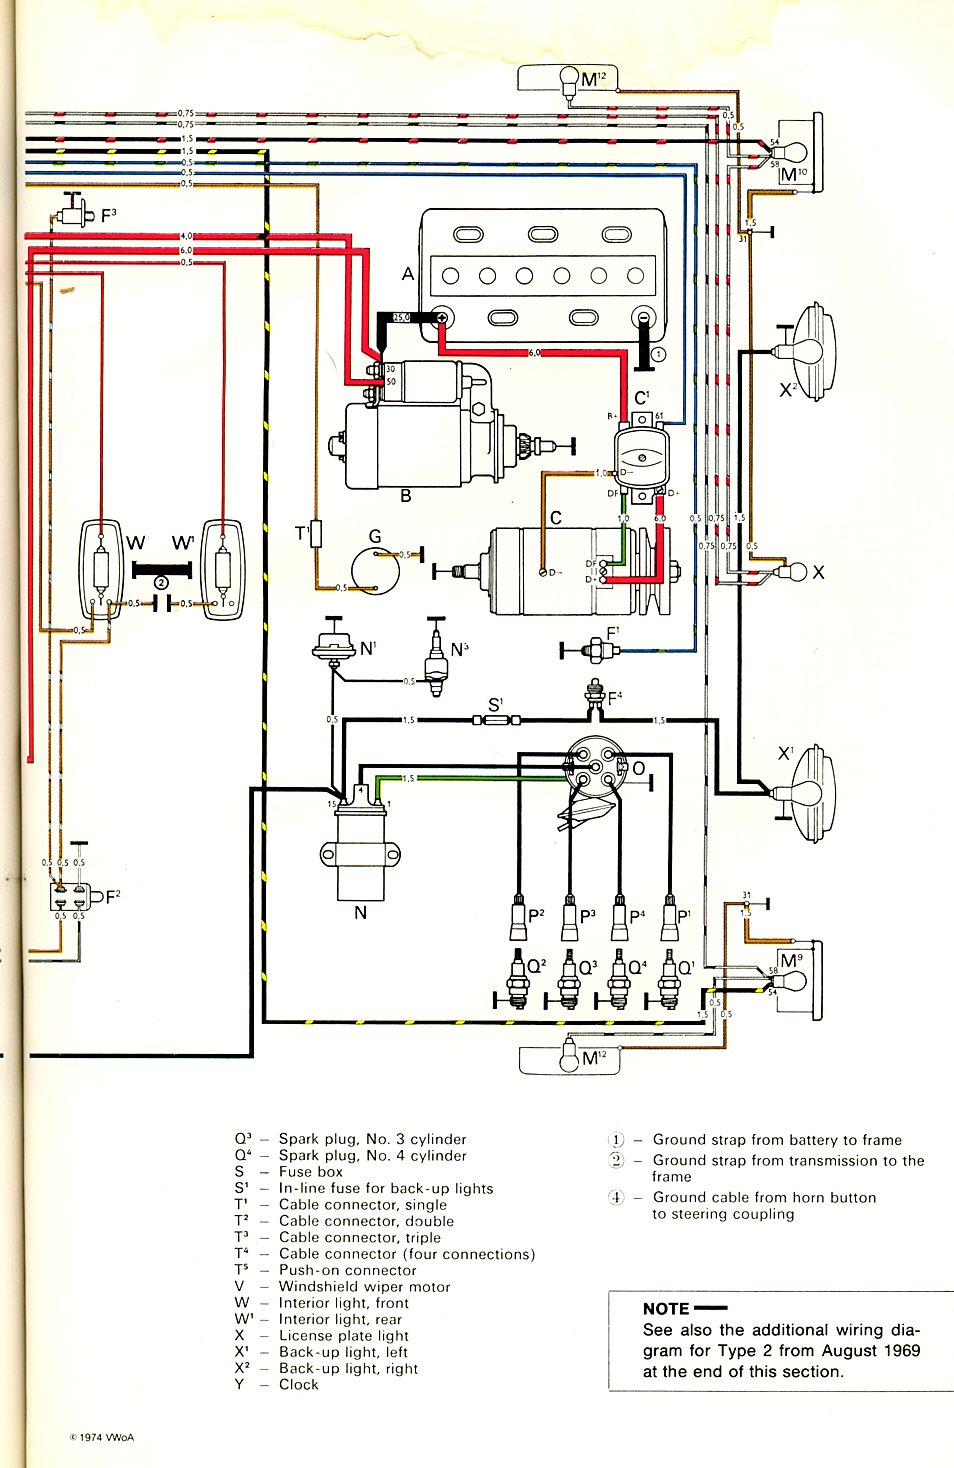 Type 2 Wiring Diagrams Wire Diagram Two